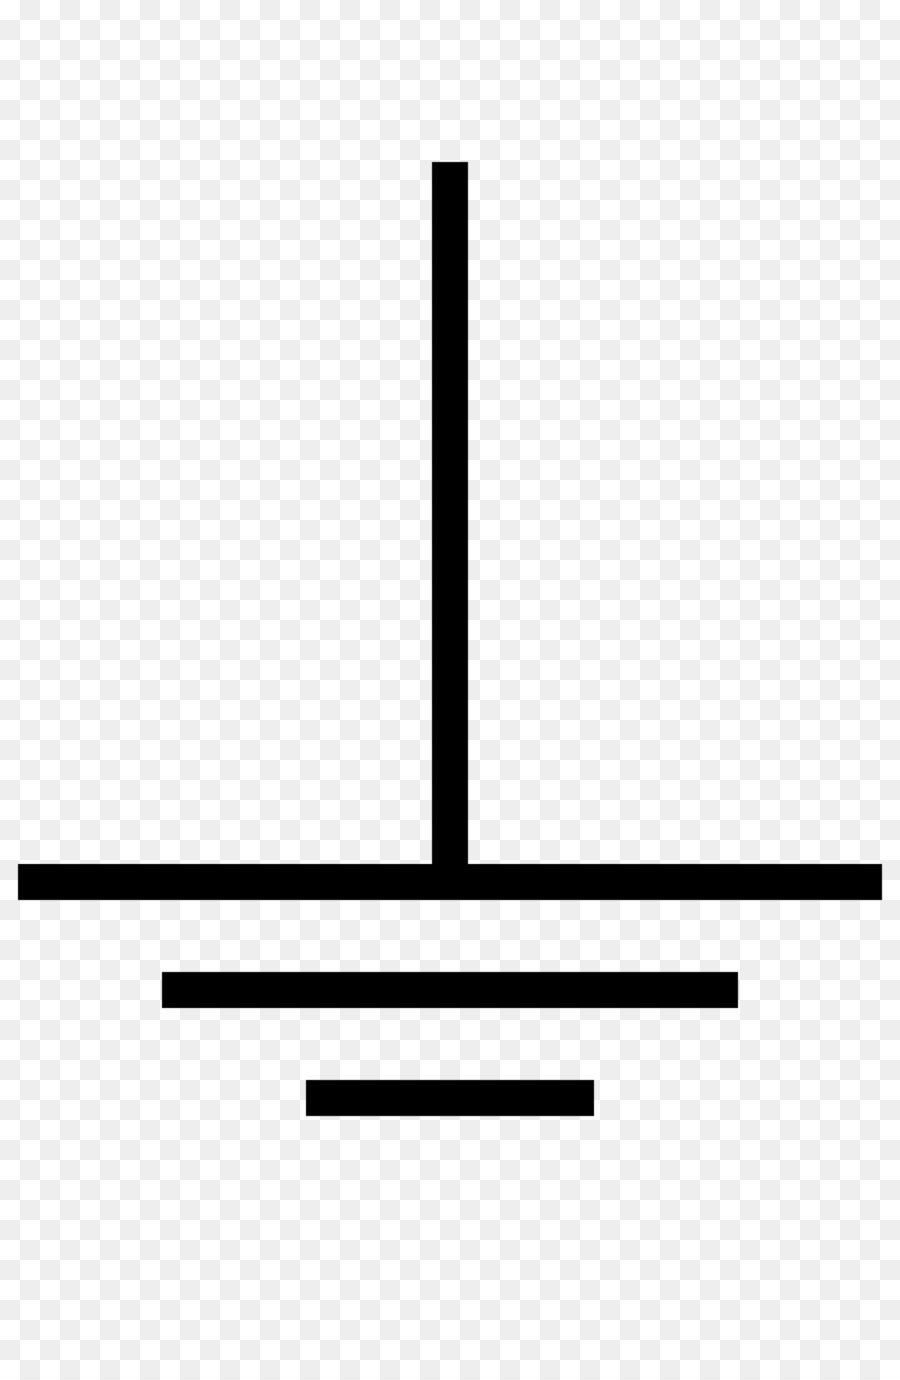 Ground Electronic Symbol Circuit Diagram Electrical Schematic Symbols Network